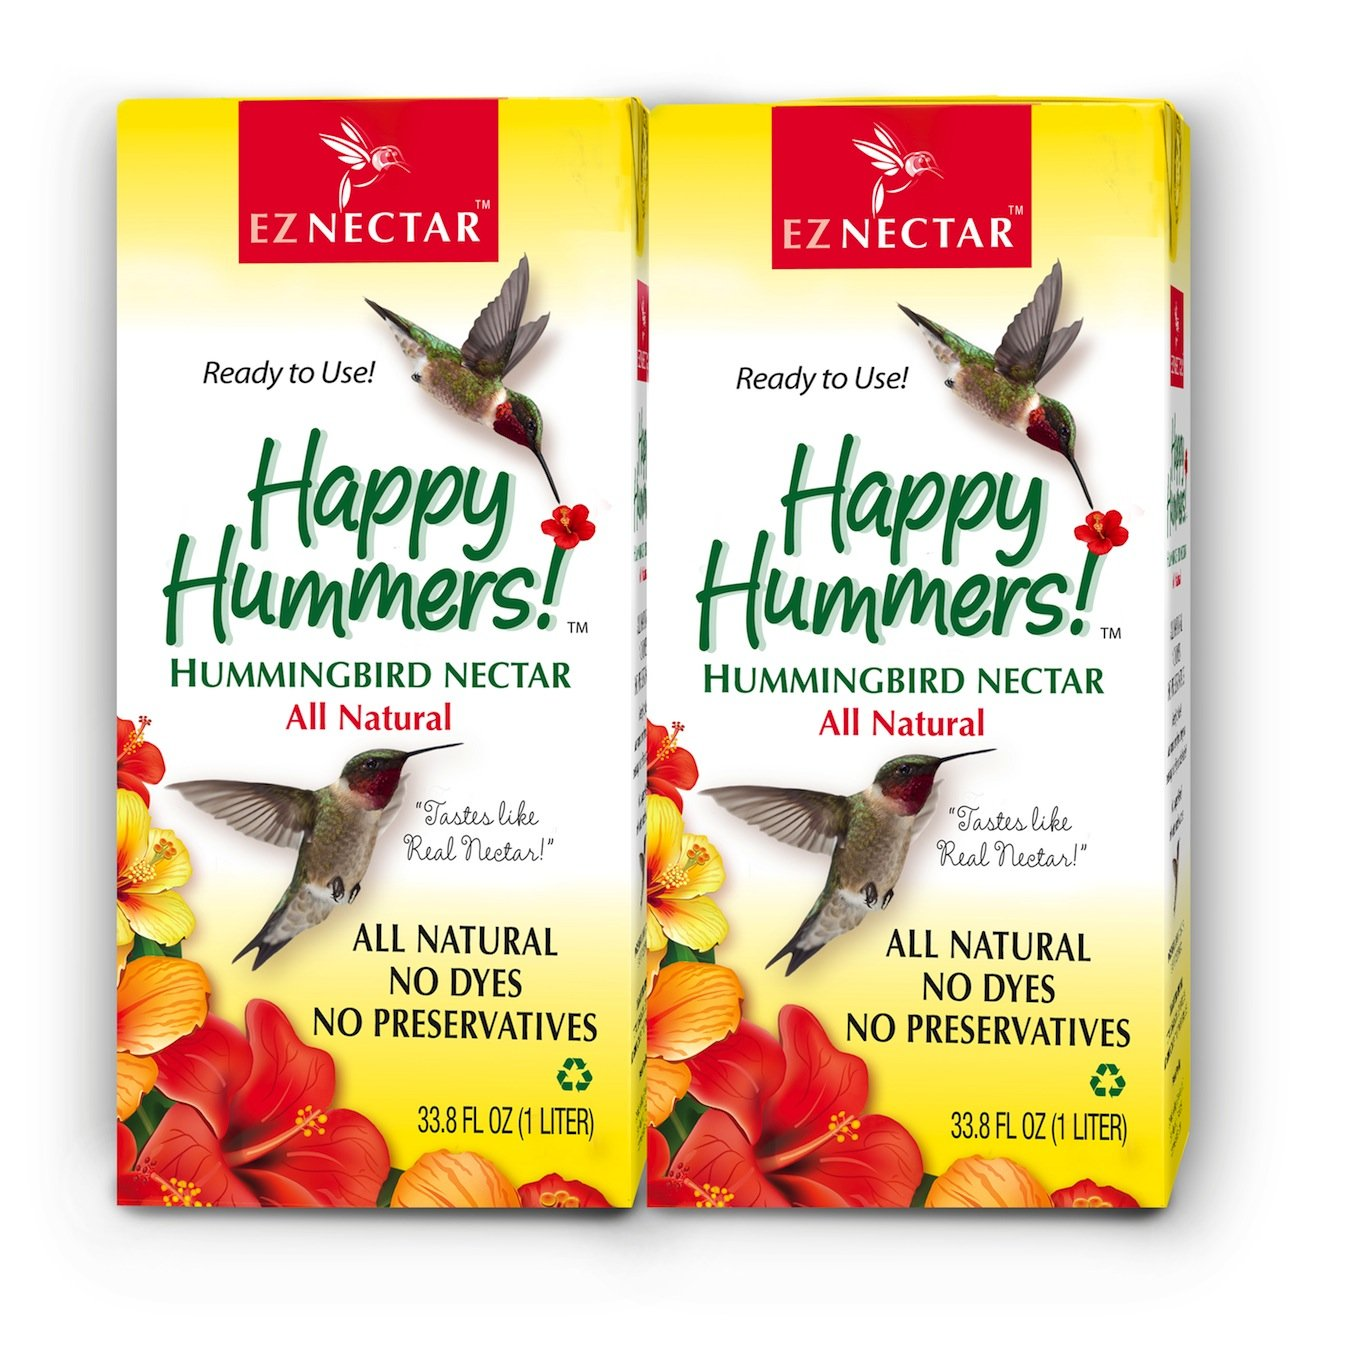 EZNectar - The Only Ready-to-Use Hummingbird Nectar''Exactly Like Flower Nectar.'' Patented, Preservative & Dye Free, Hummingbird Food - Nectar (2 Piece) 67.6 FL OZ TOTAL